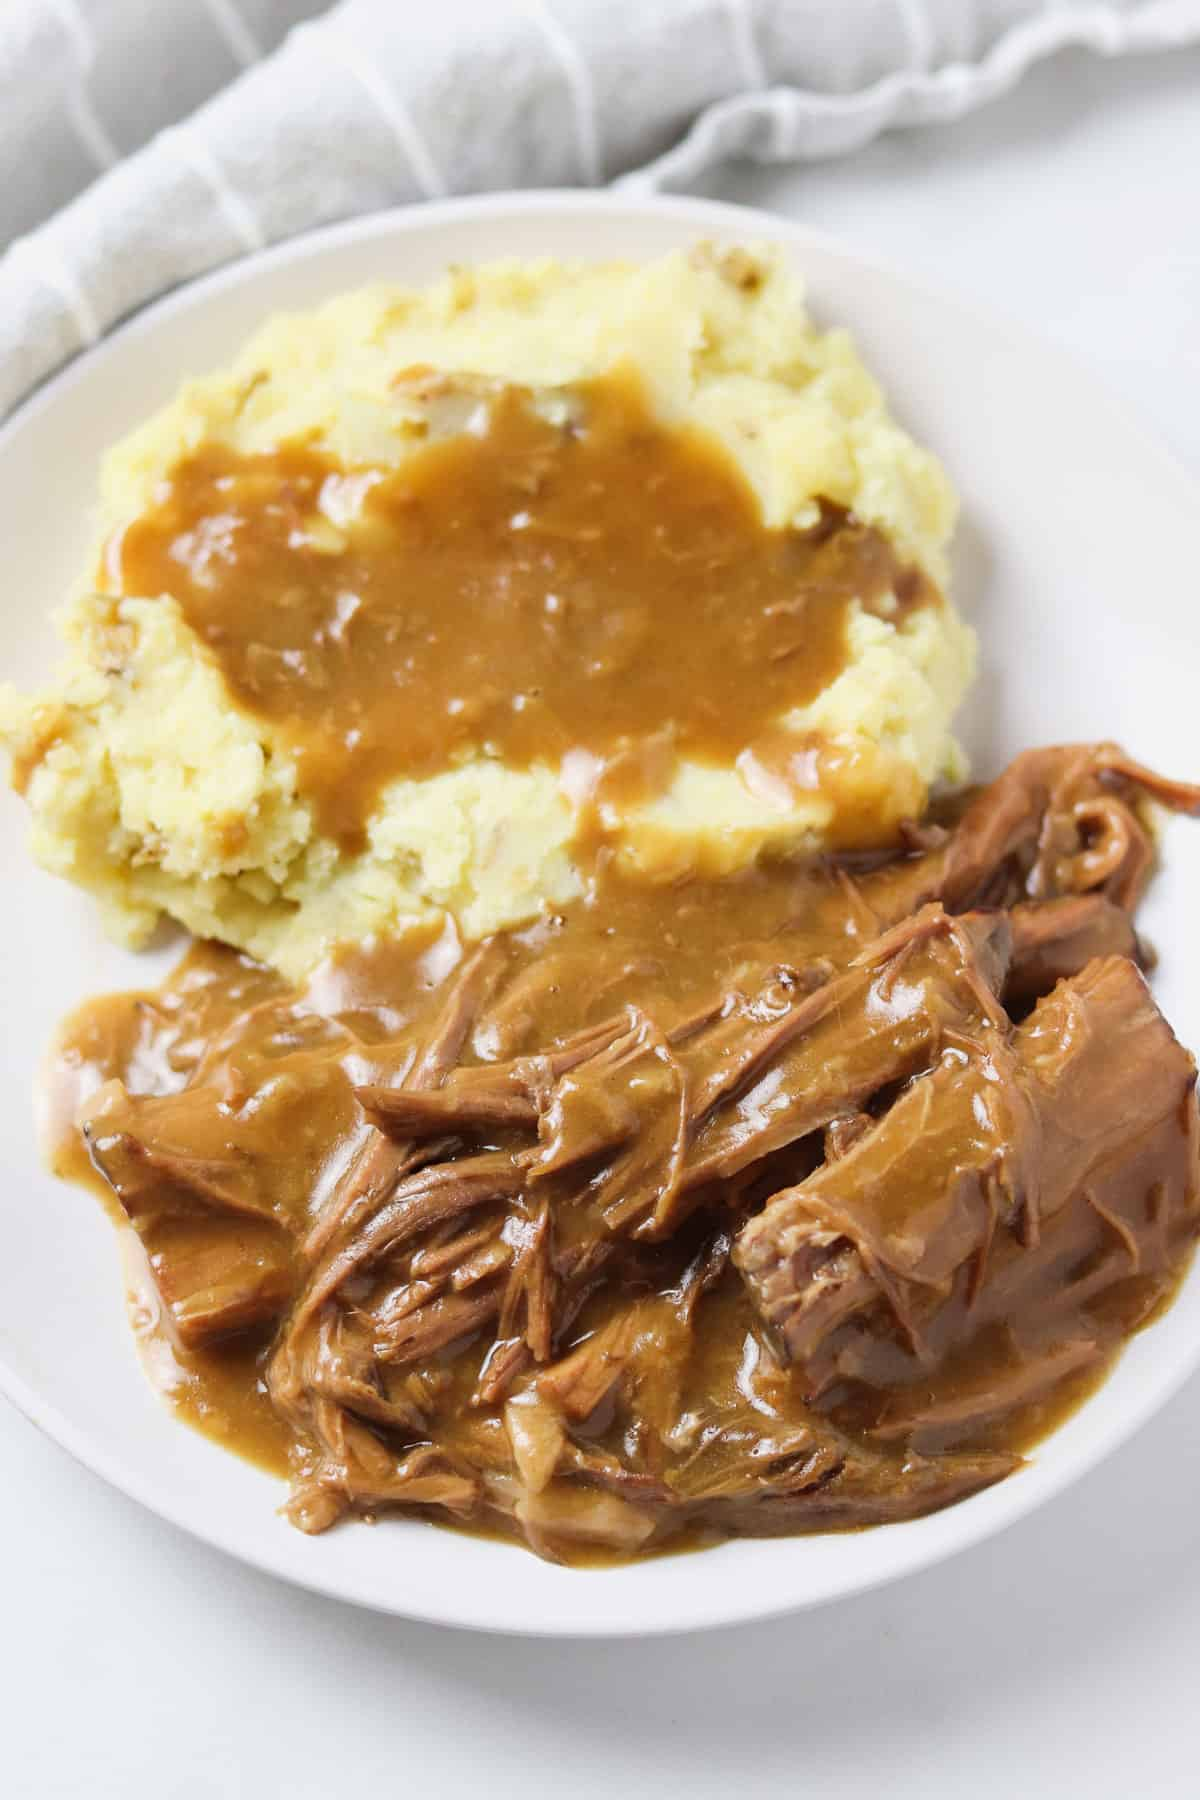 plate with pot roast with gravy and mashed potatoes with gravy